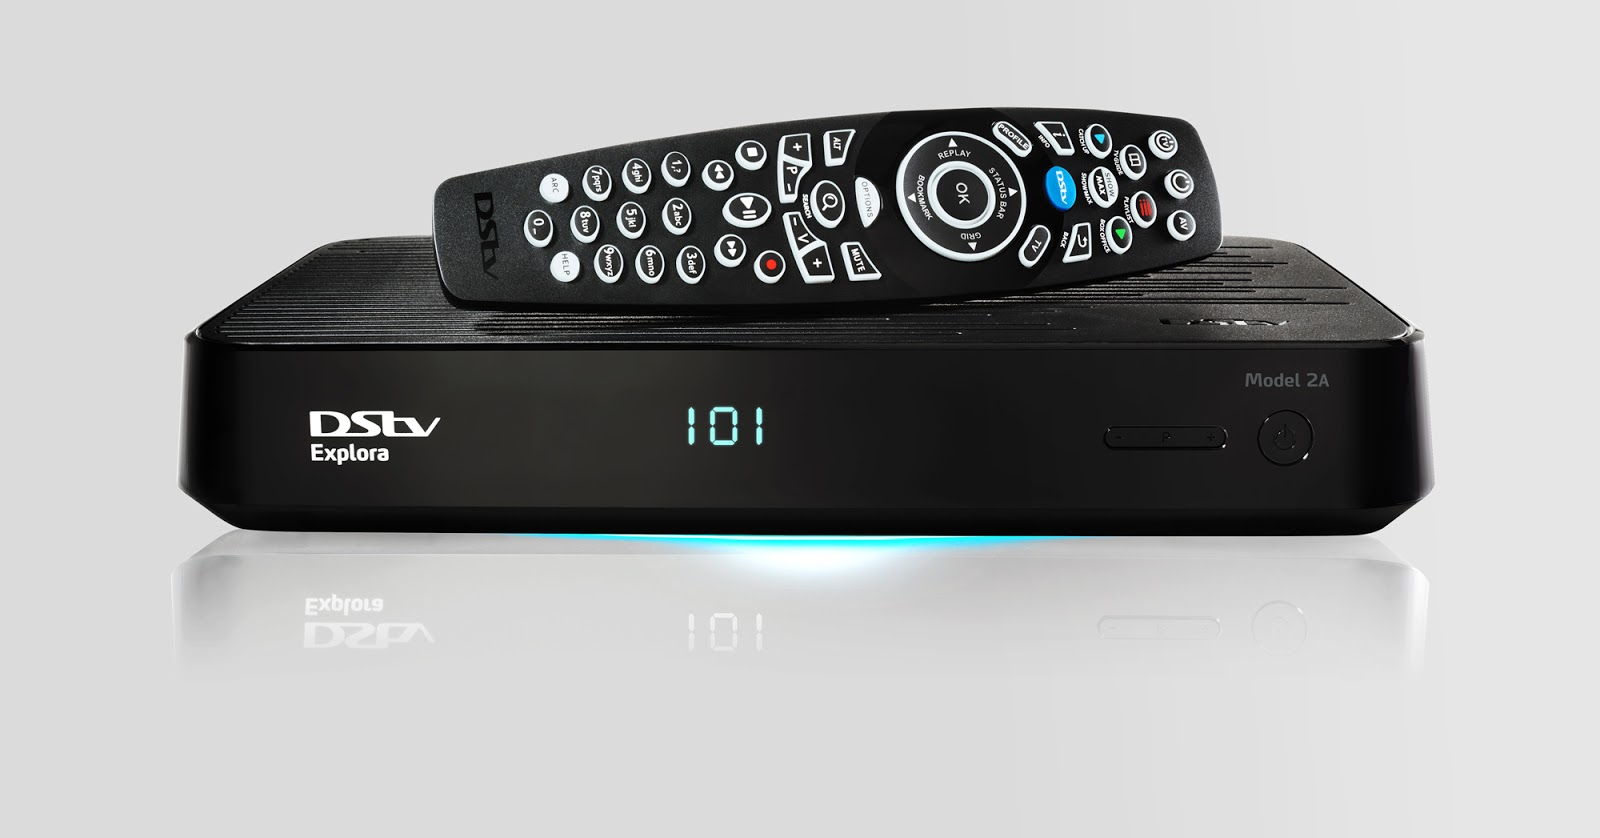 Tv With Thinus Multichoice Launches New Explora 2a Smaller Background Music Decoder Is Launching A Hard Drive Culling Several Channels From Its Dstv Satellite Pay Service To Lessen